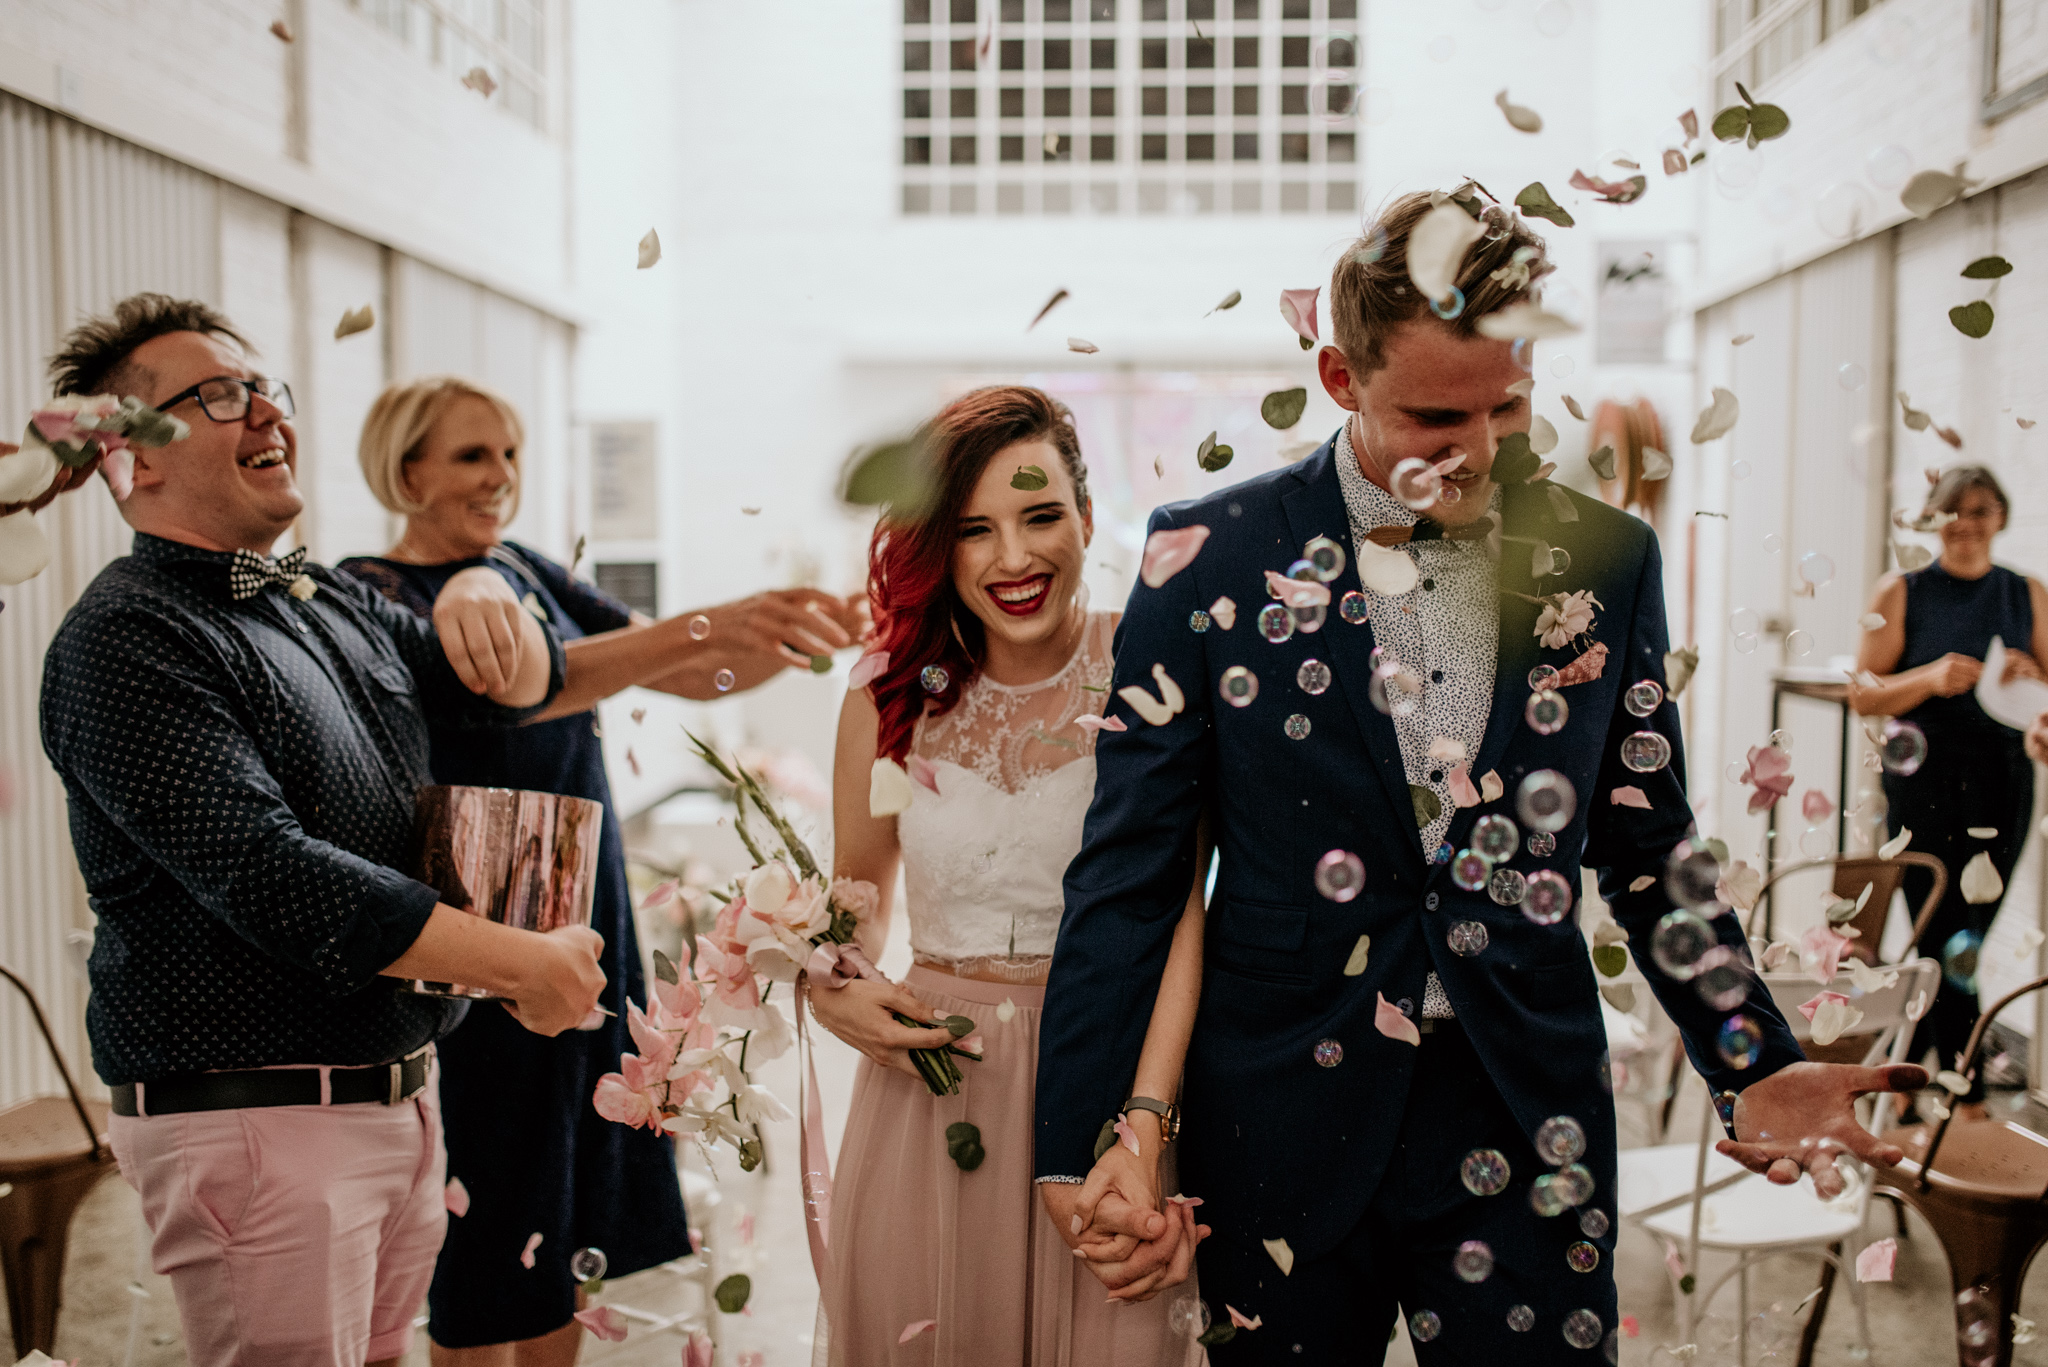 Bride and groom leave the building with bubbles being blown and confetti thrown by guests